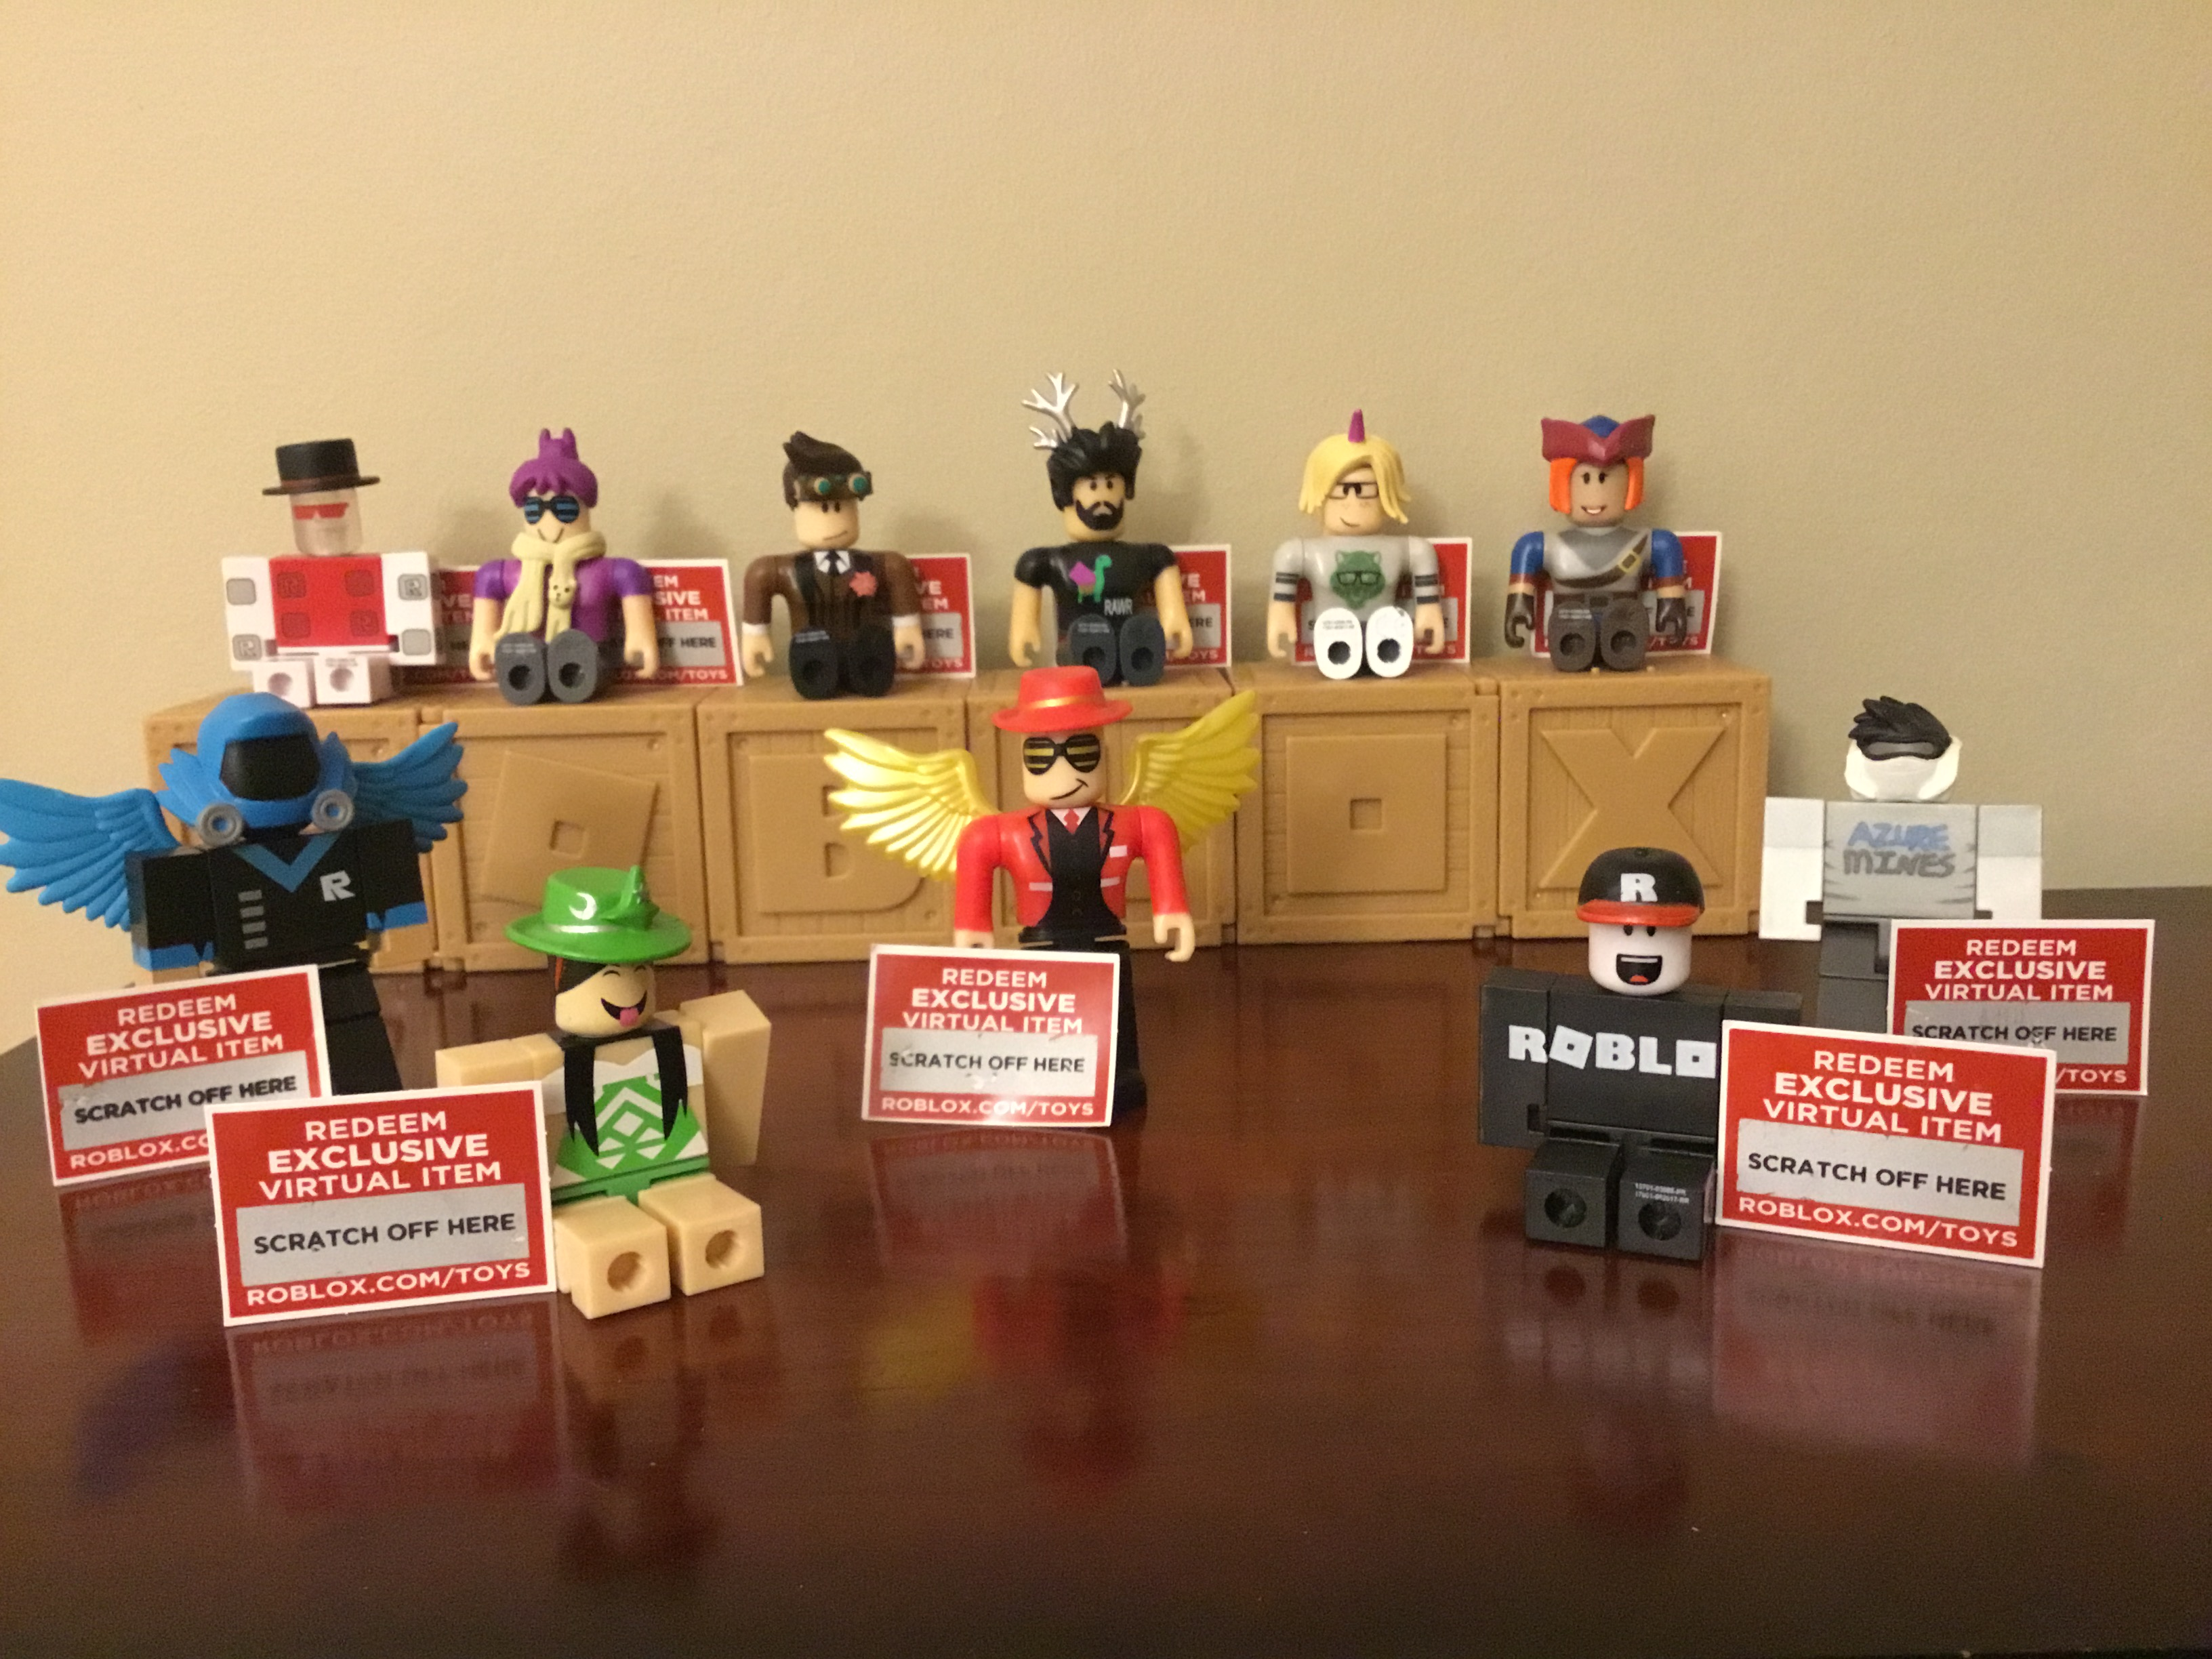 how do you redeem roblox toy codes